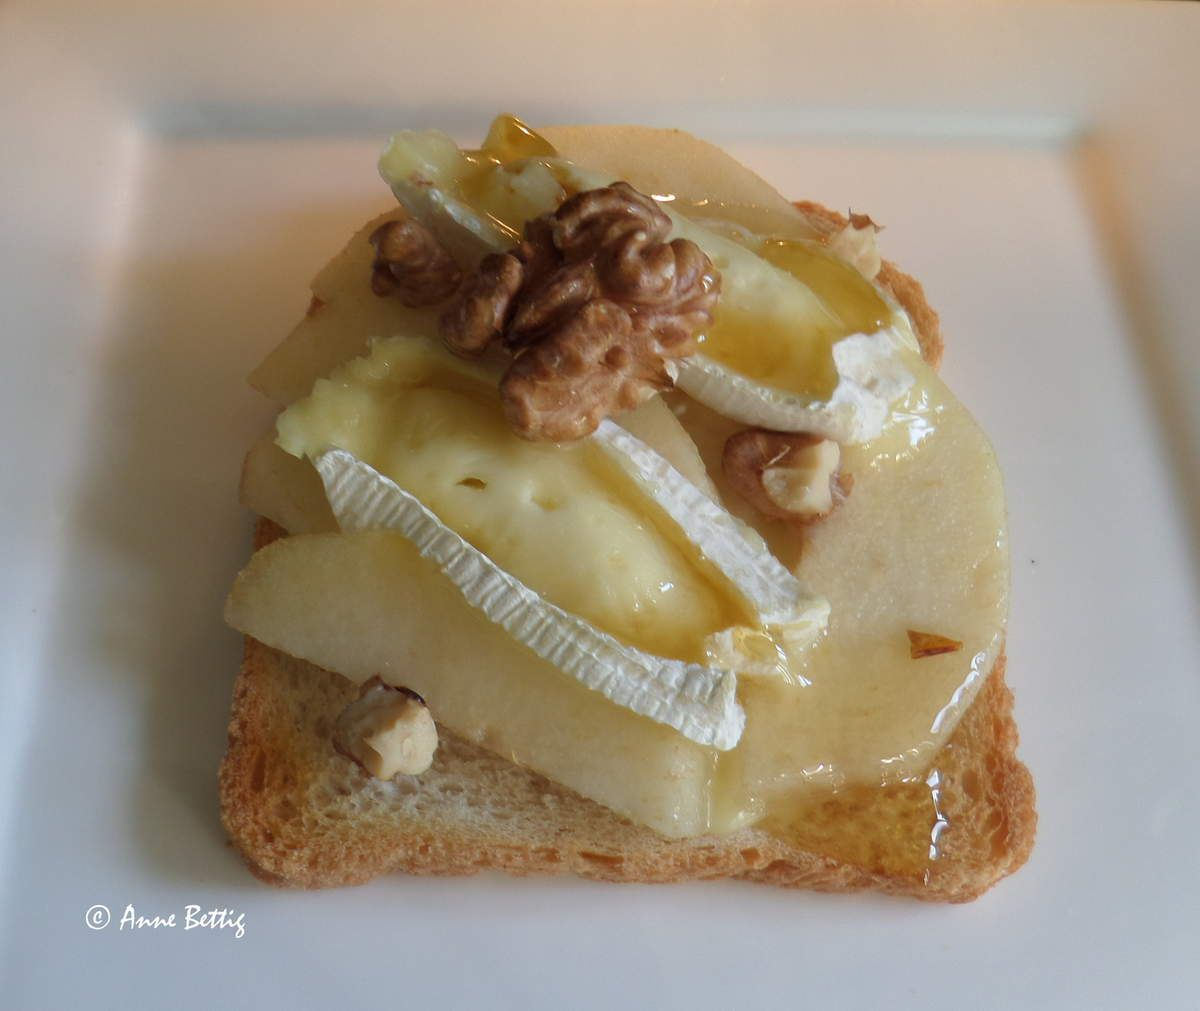 Toast brie poire la cuisine toute simple de mamita for Entree vite faite simple